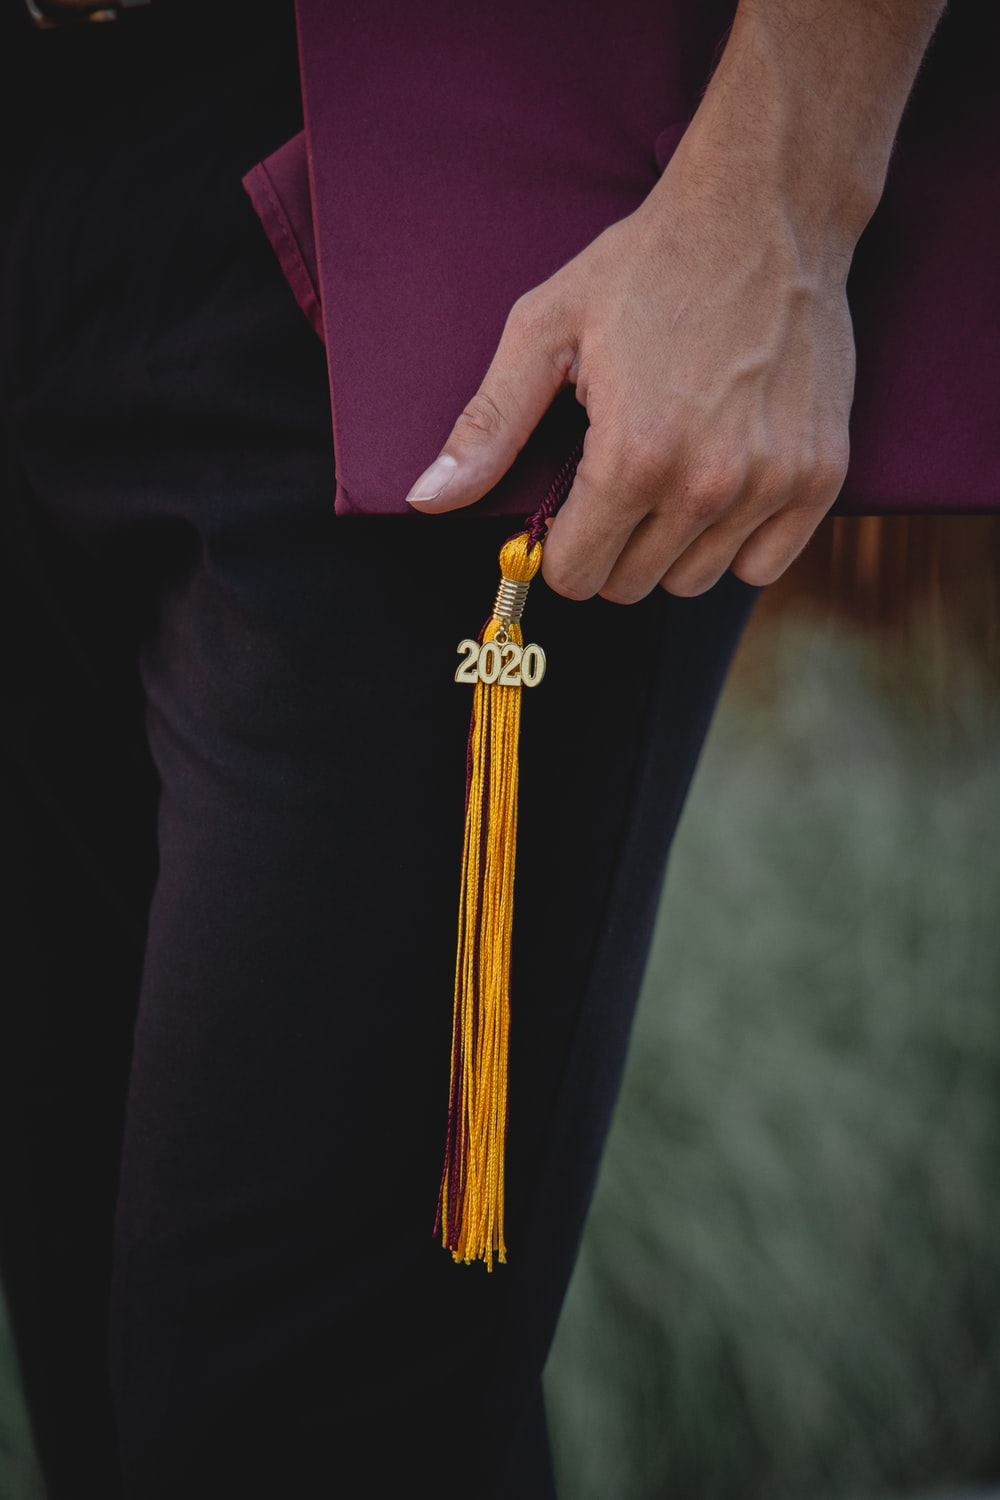 person holding gold and black belt buckle